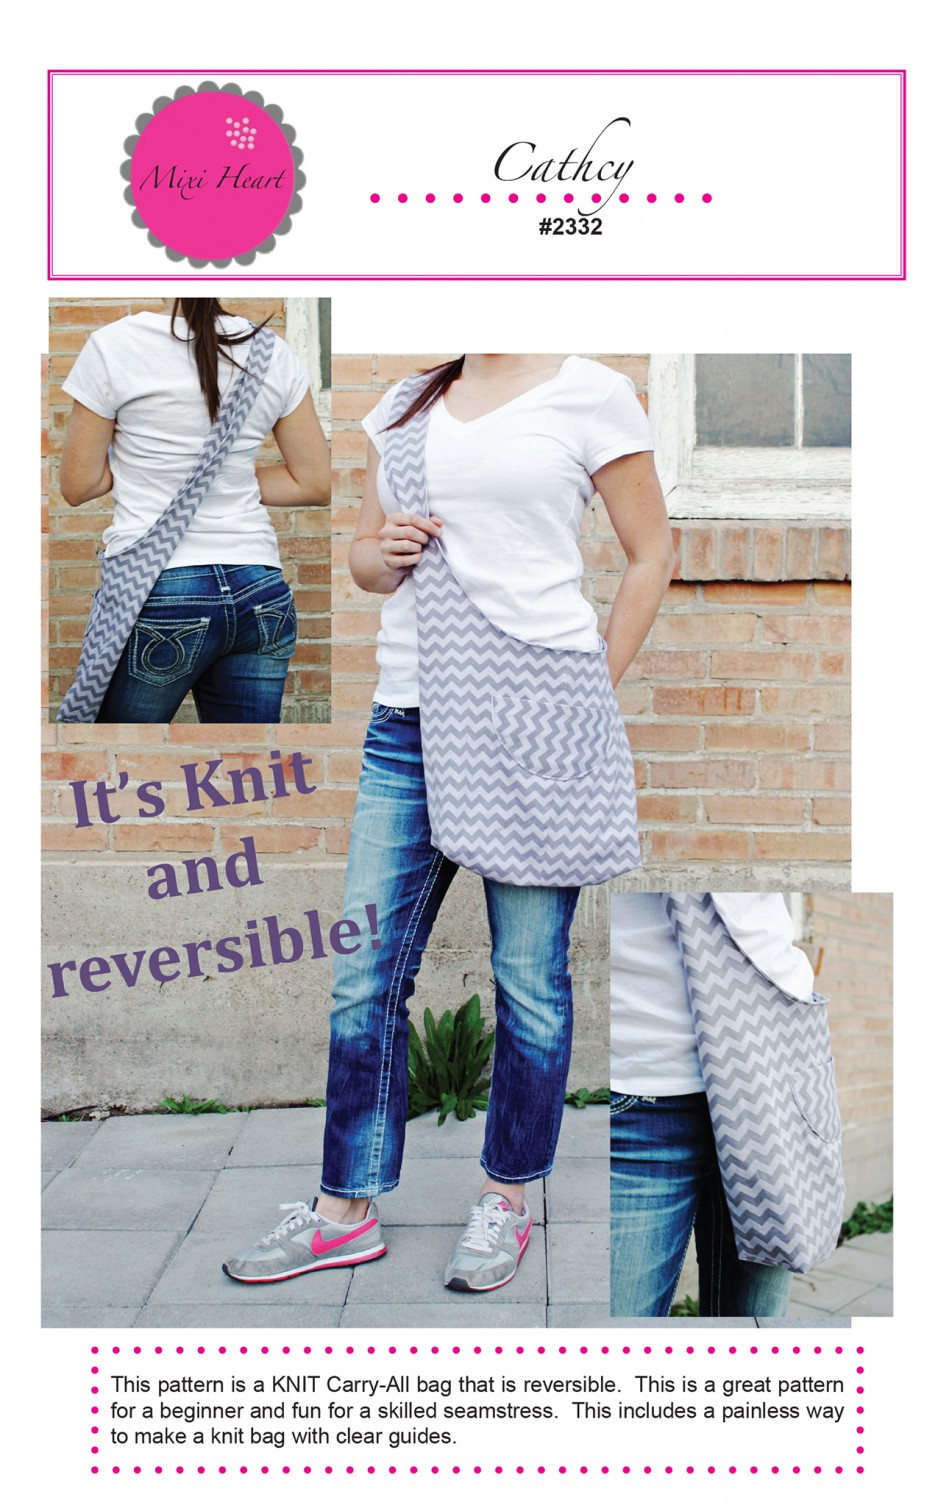 Catchy Knit Carry-All, Reversible Purse Pattern